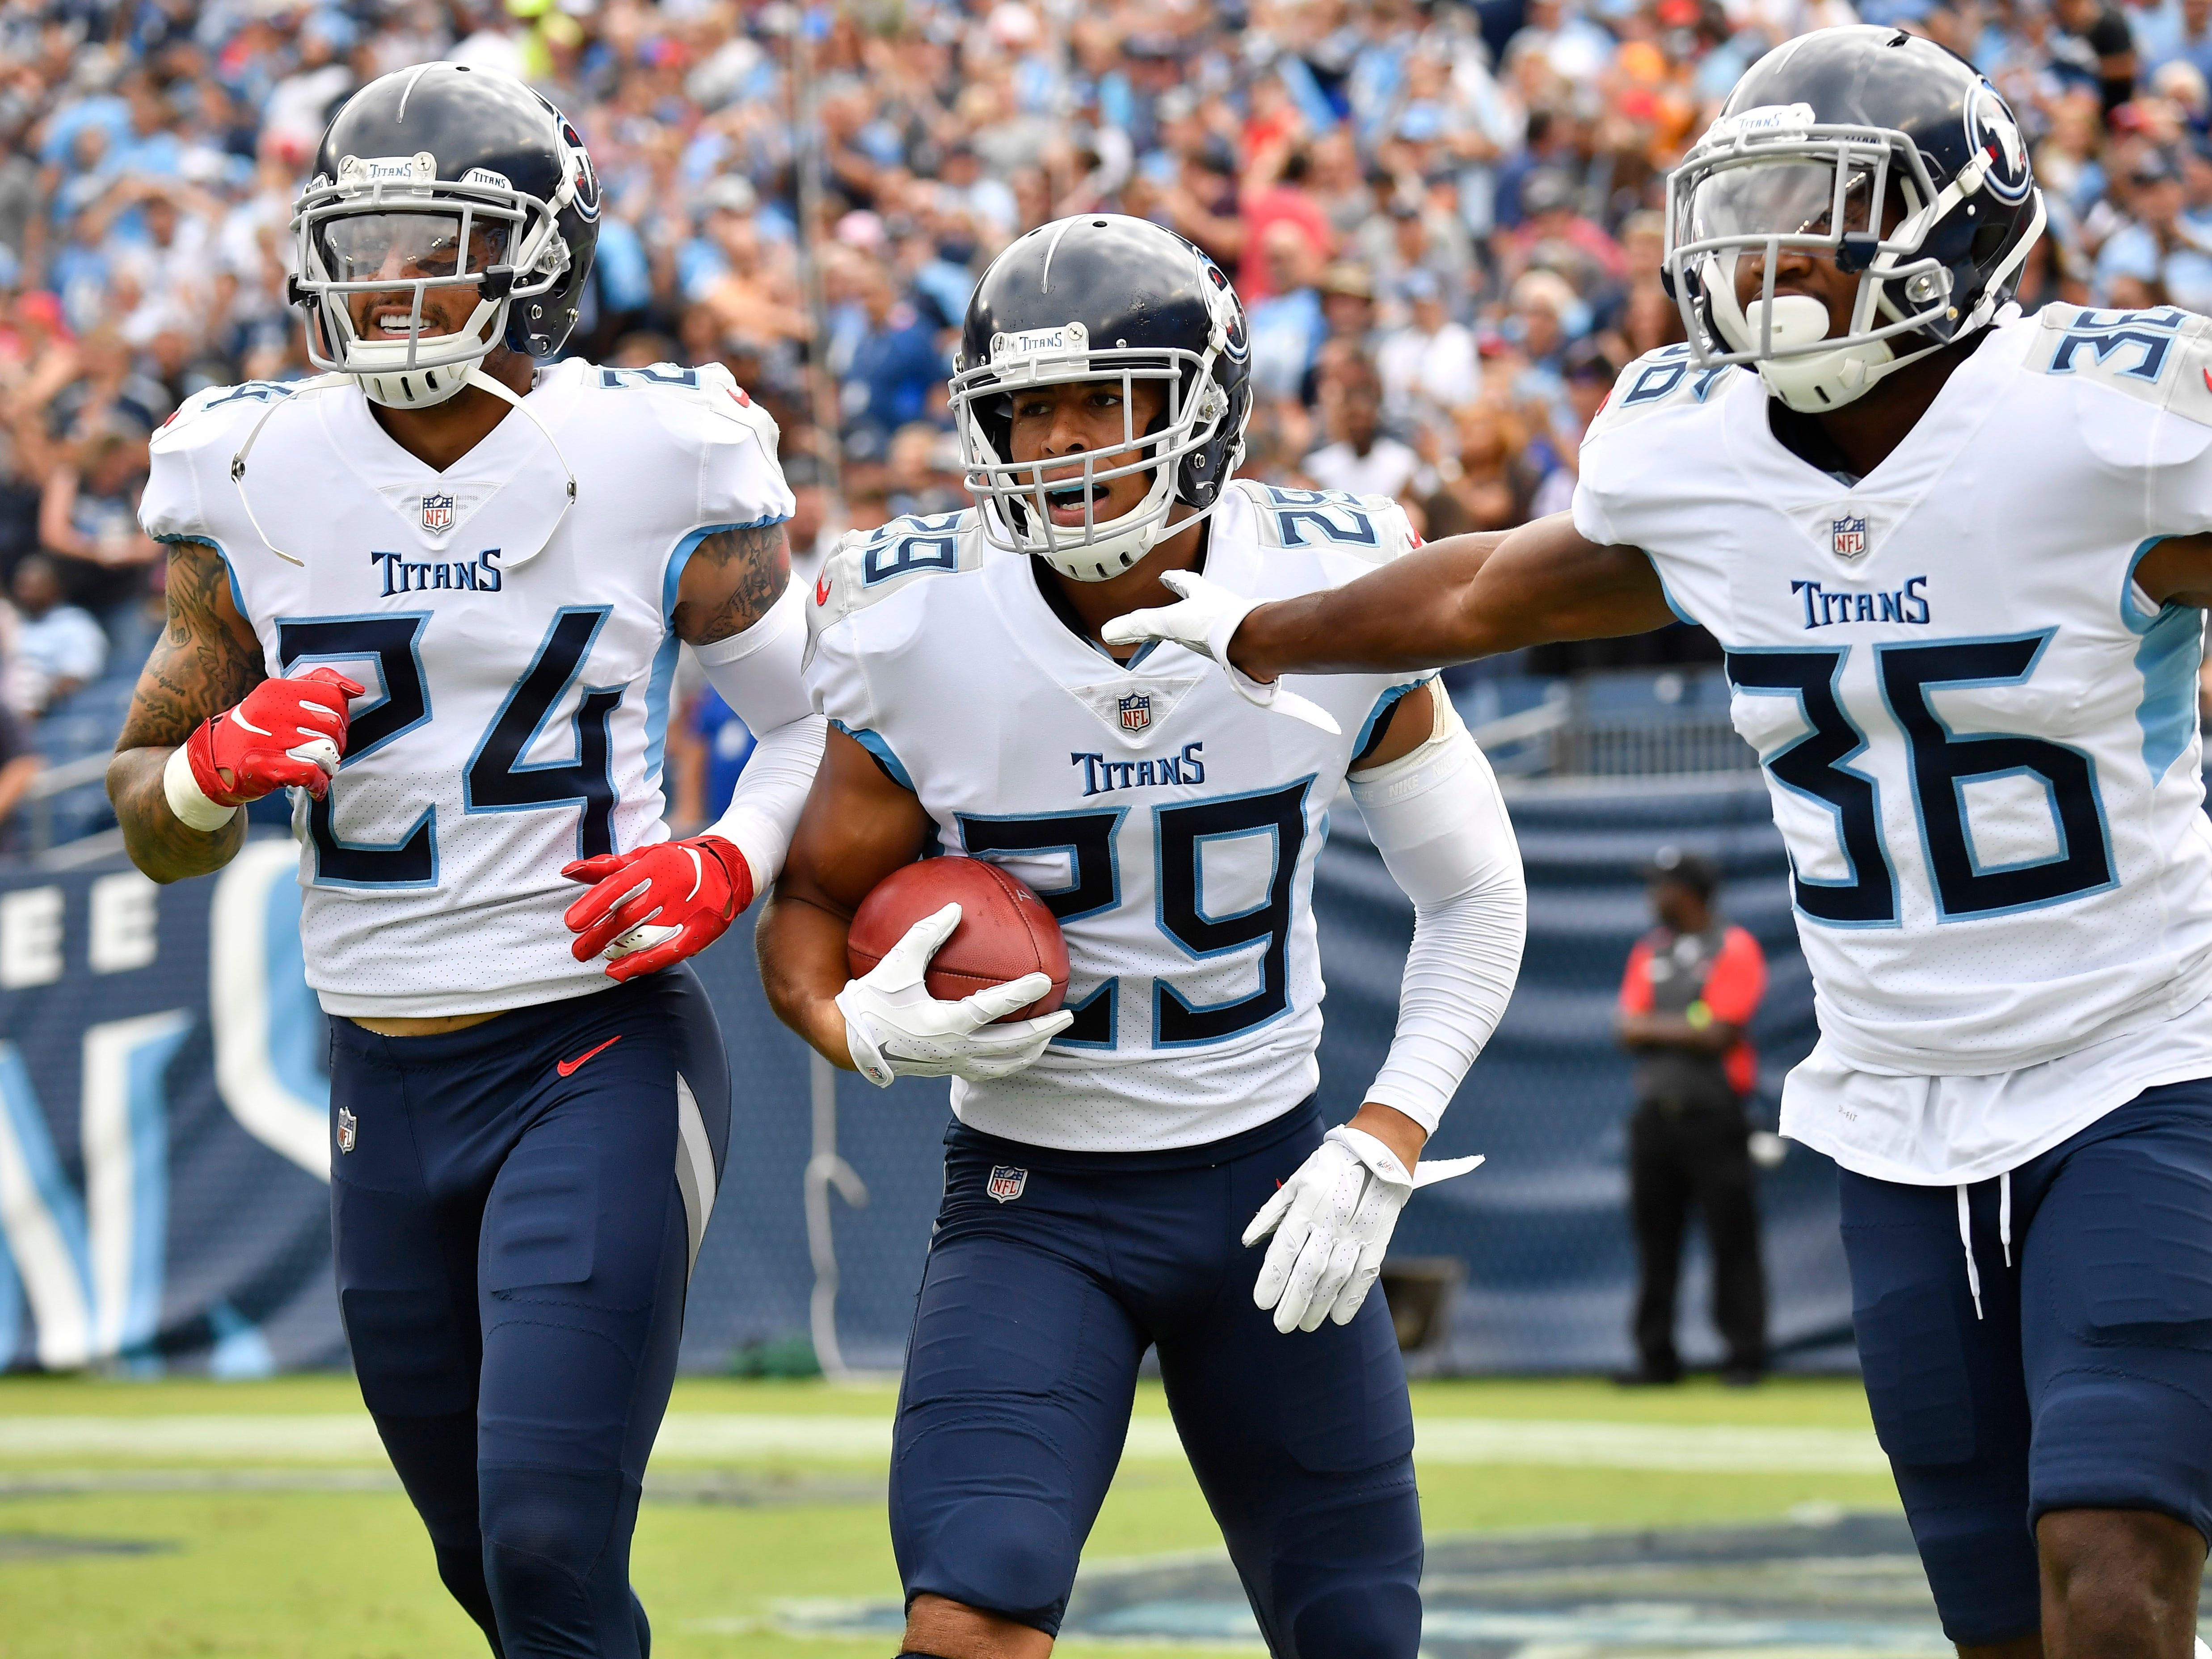 Titans cornerback Dane Cruikshank (29) celebrates his touchdown with safety Kenny Vaccaro (24) and cornerback LeShaun Sims (36) in the first quarter at Nissan Stadium Sunday, Sept. 16, 2018, in Nashville, Tenn.